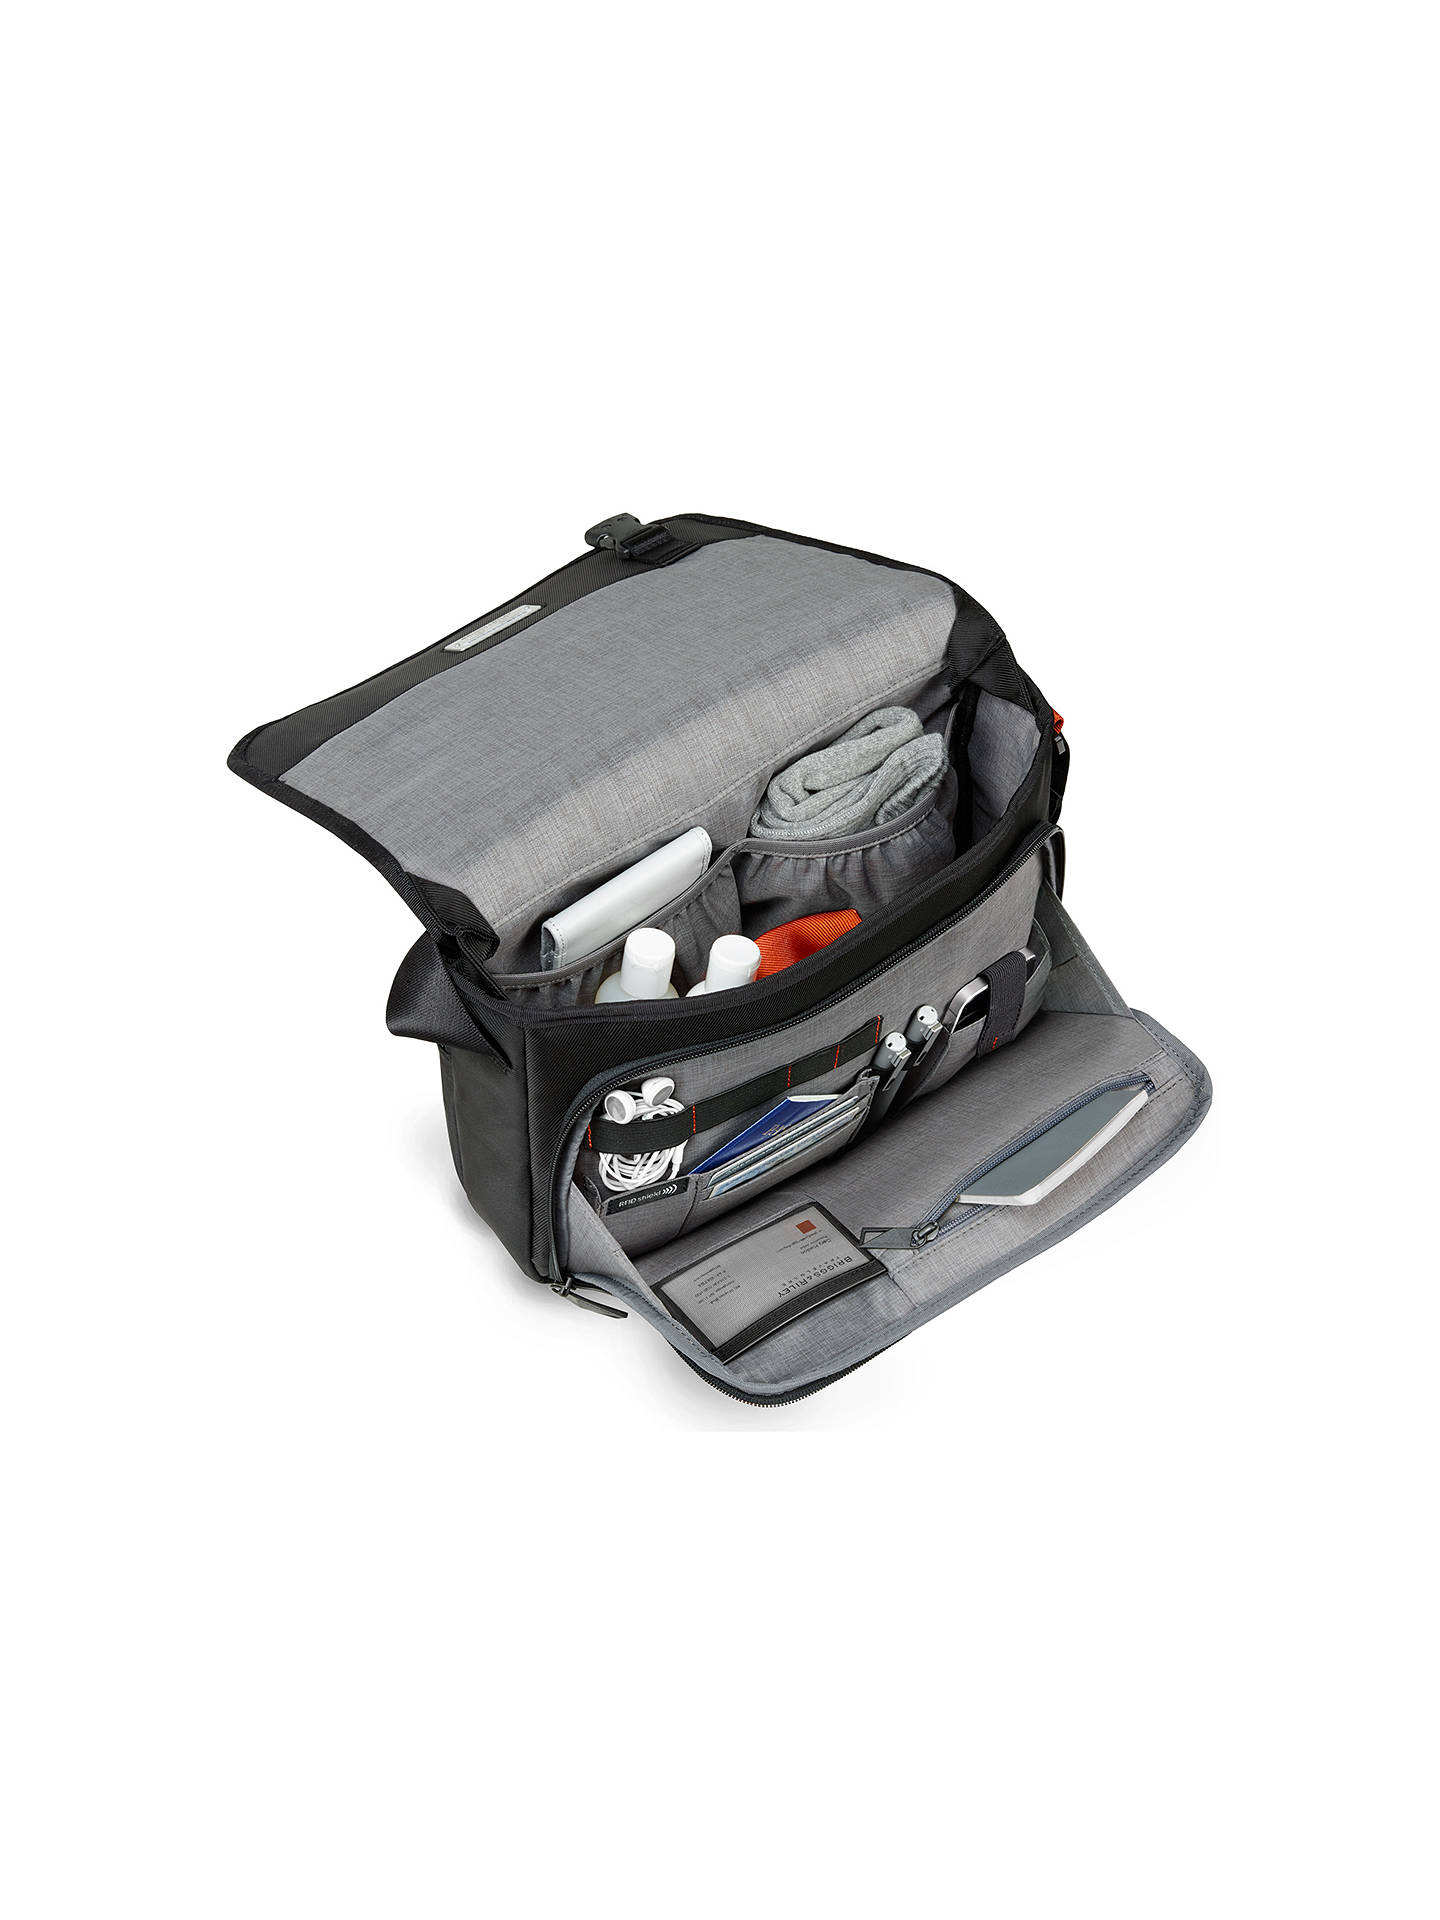 Buy Briggs & Riley Verb Instant Messenger Bag, Black Online at johnlewis.com